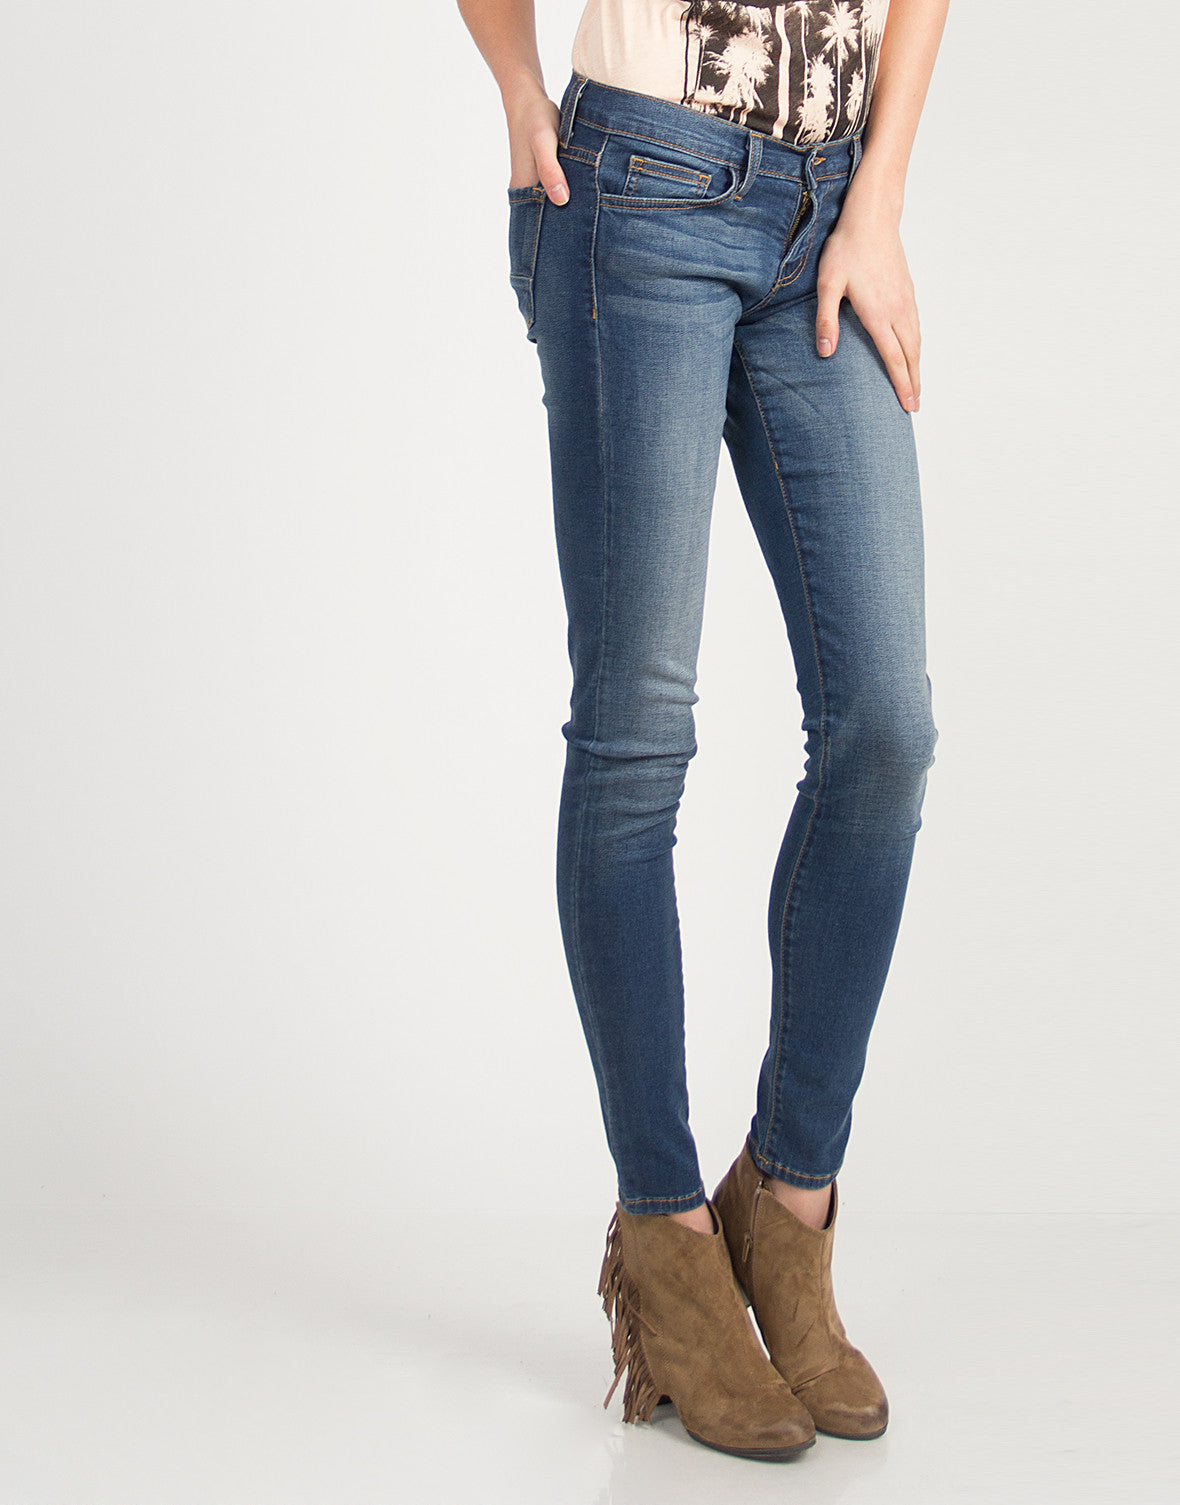 Vintage Faded Wash Skinny Jeans